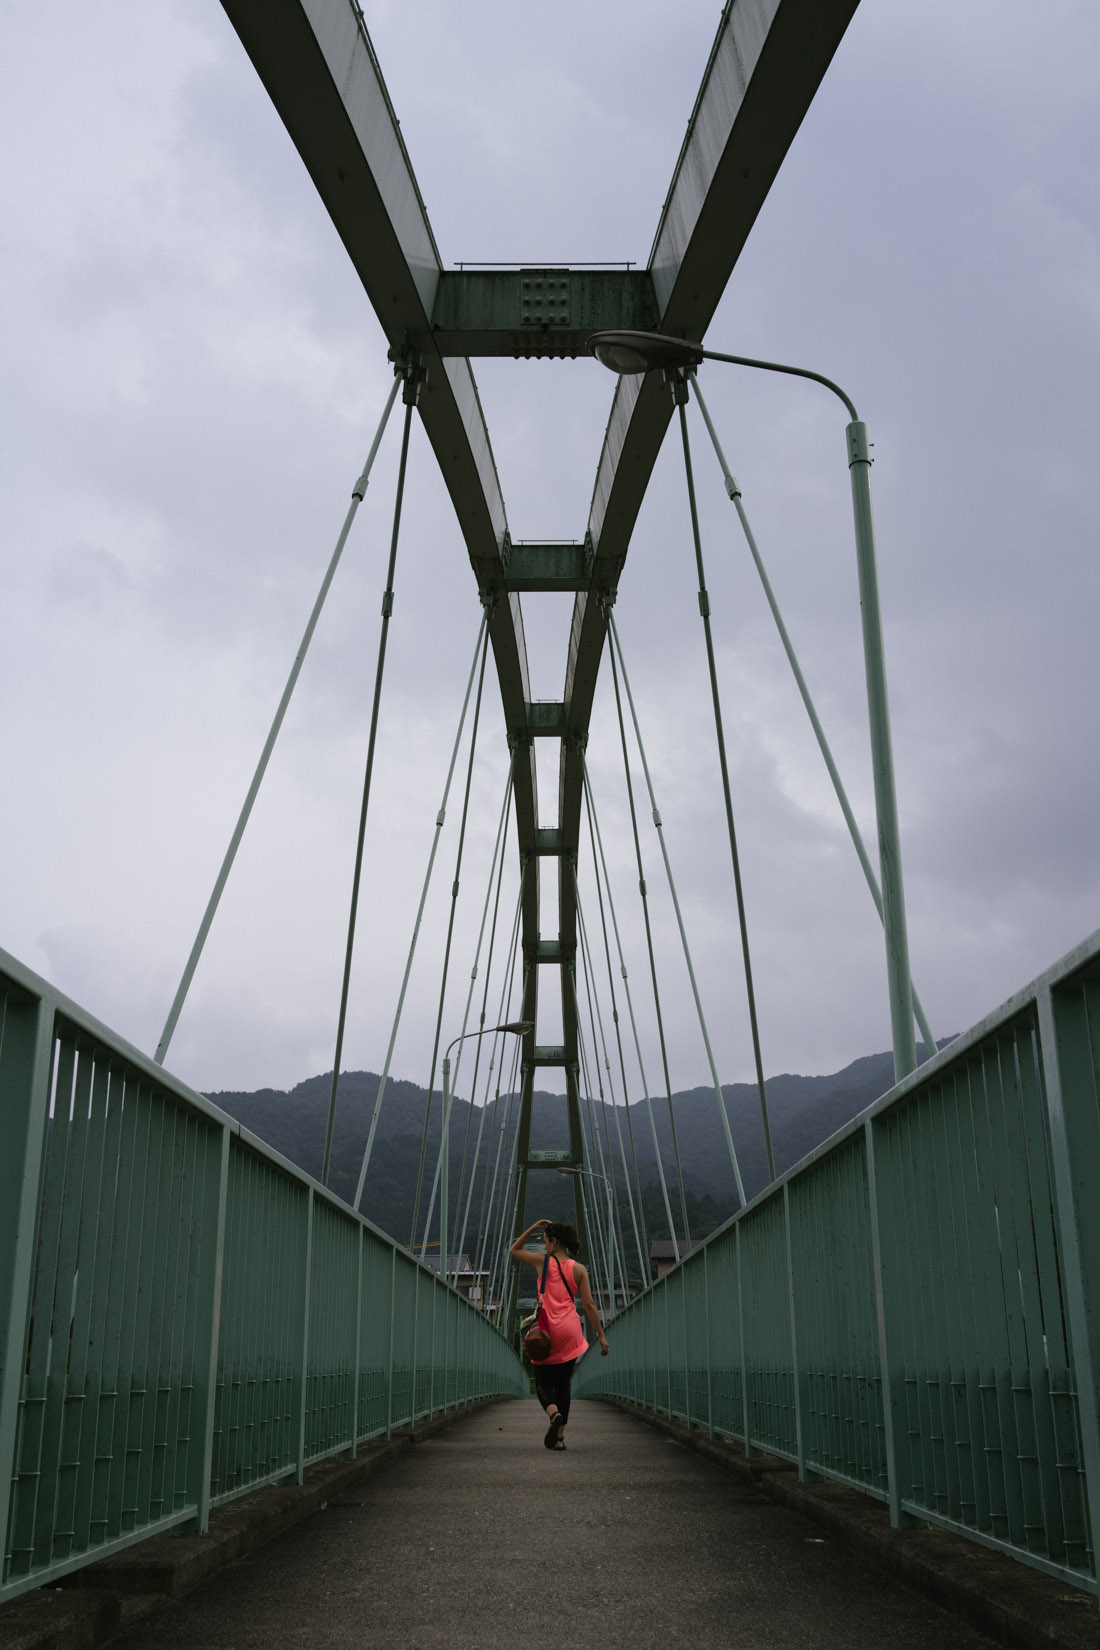 Crossing the bridge to the right side of town.